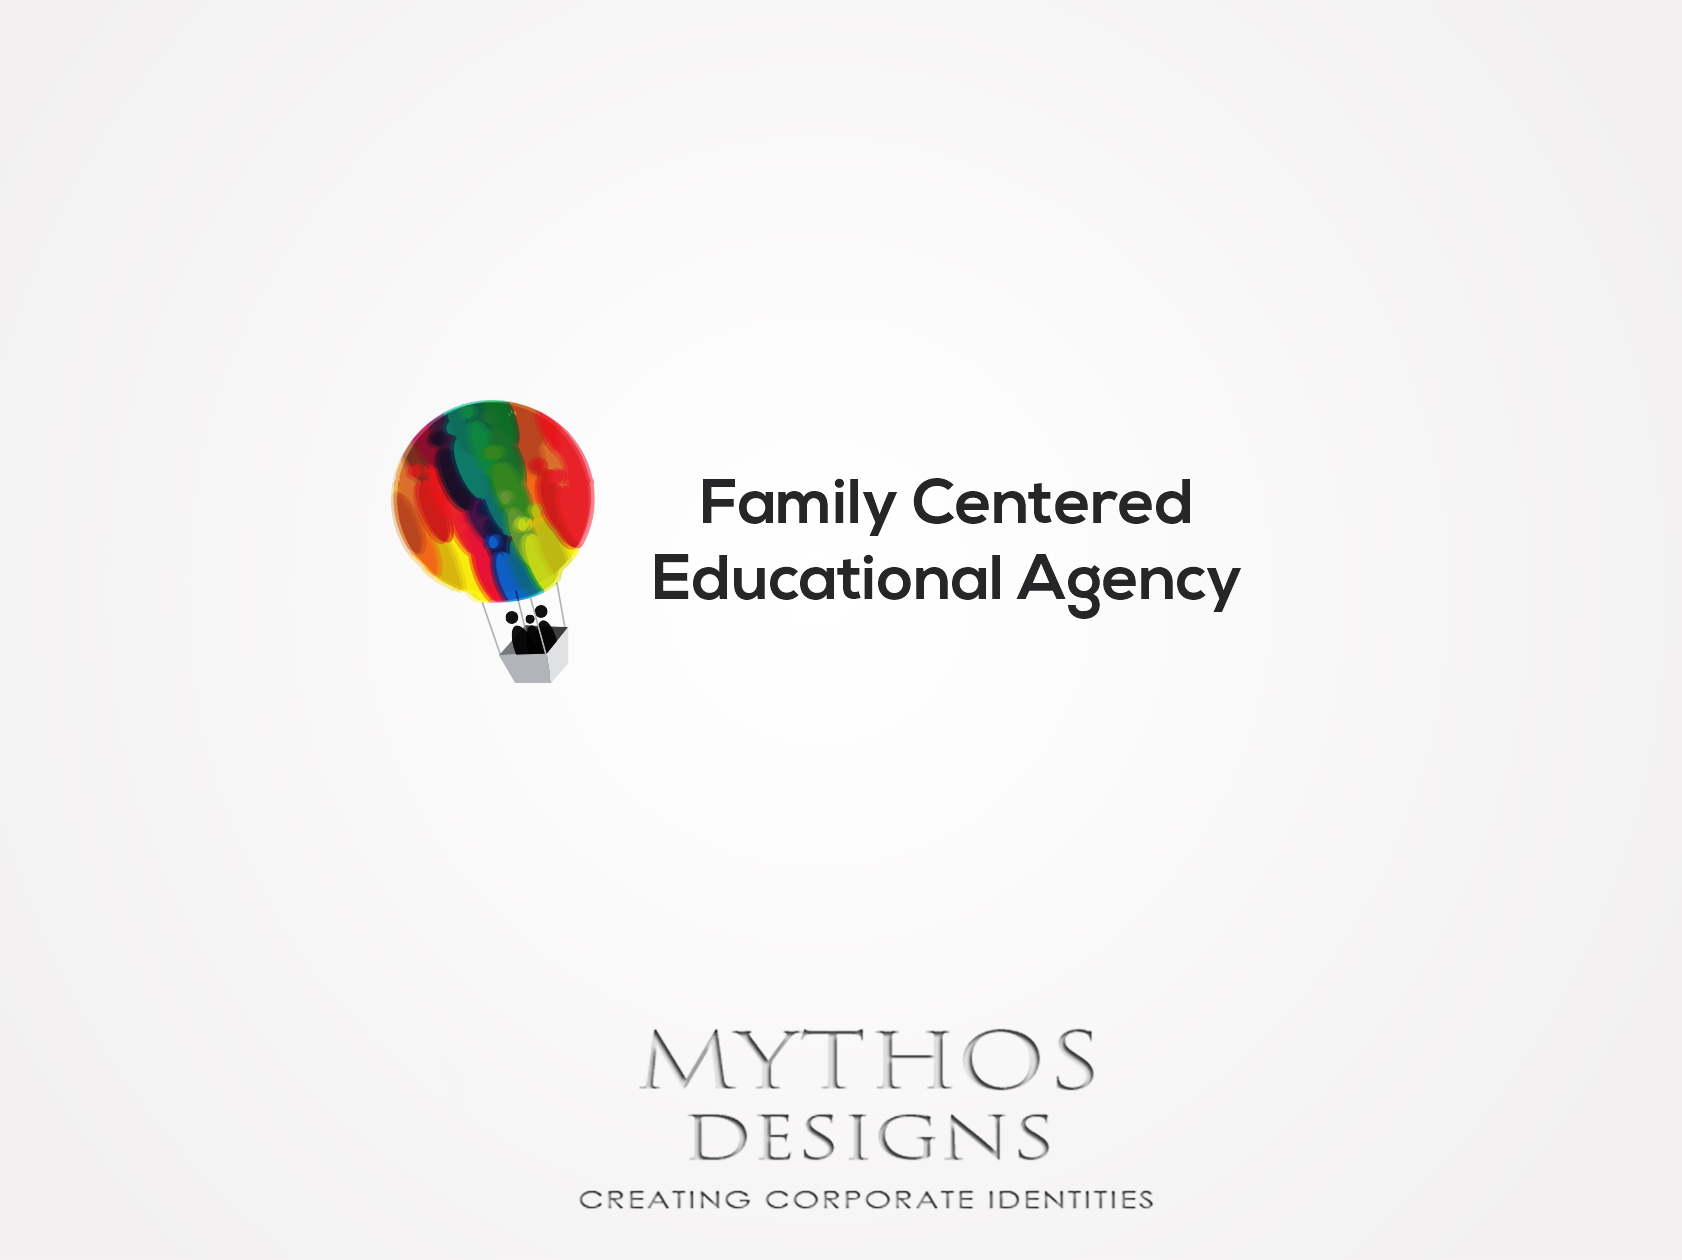 Logo Design by Mythos Designs - Entry No. 23 in the Logo Design Contest Captivating Logo Design for Family Centered Educational Agency.